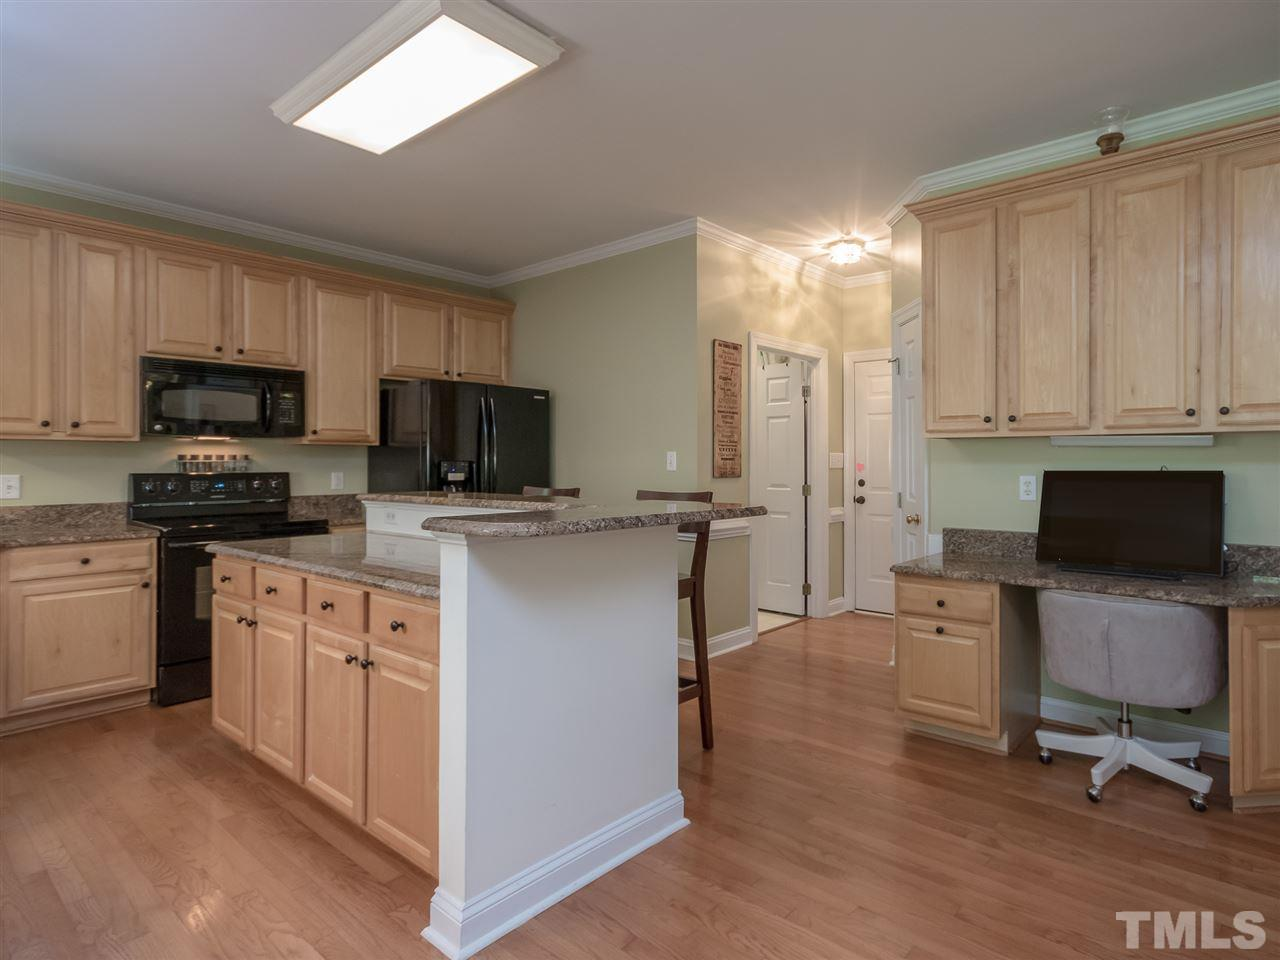 "Granite counters and spacious counter space for all the chefs in the family. 42"" cabinets with molding, large bar area for quick meals on the go, direct access to the breakfast area, pantry closet and laundry room."